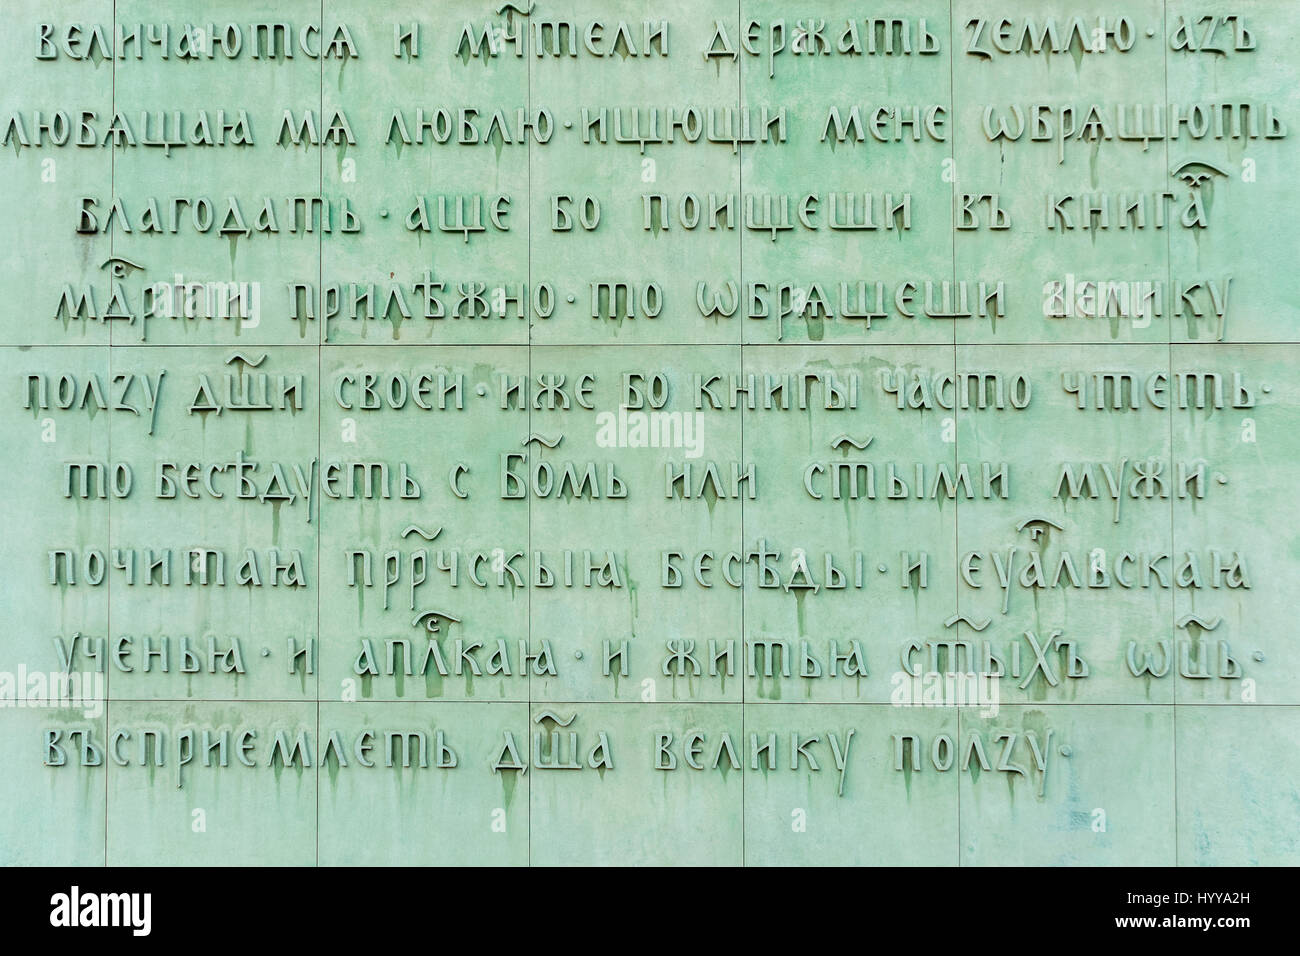 Classical texts in various scripts on large blocks of Warsaw University Library facade, Poland - Stock Image